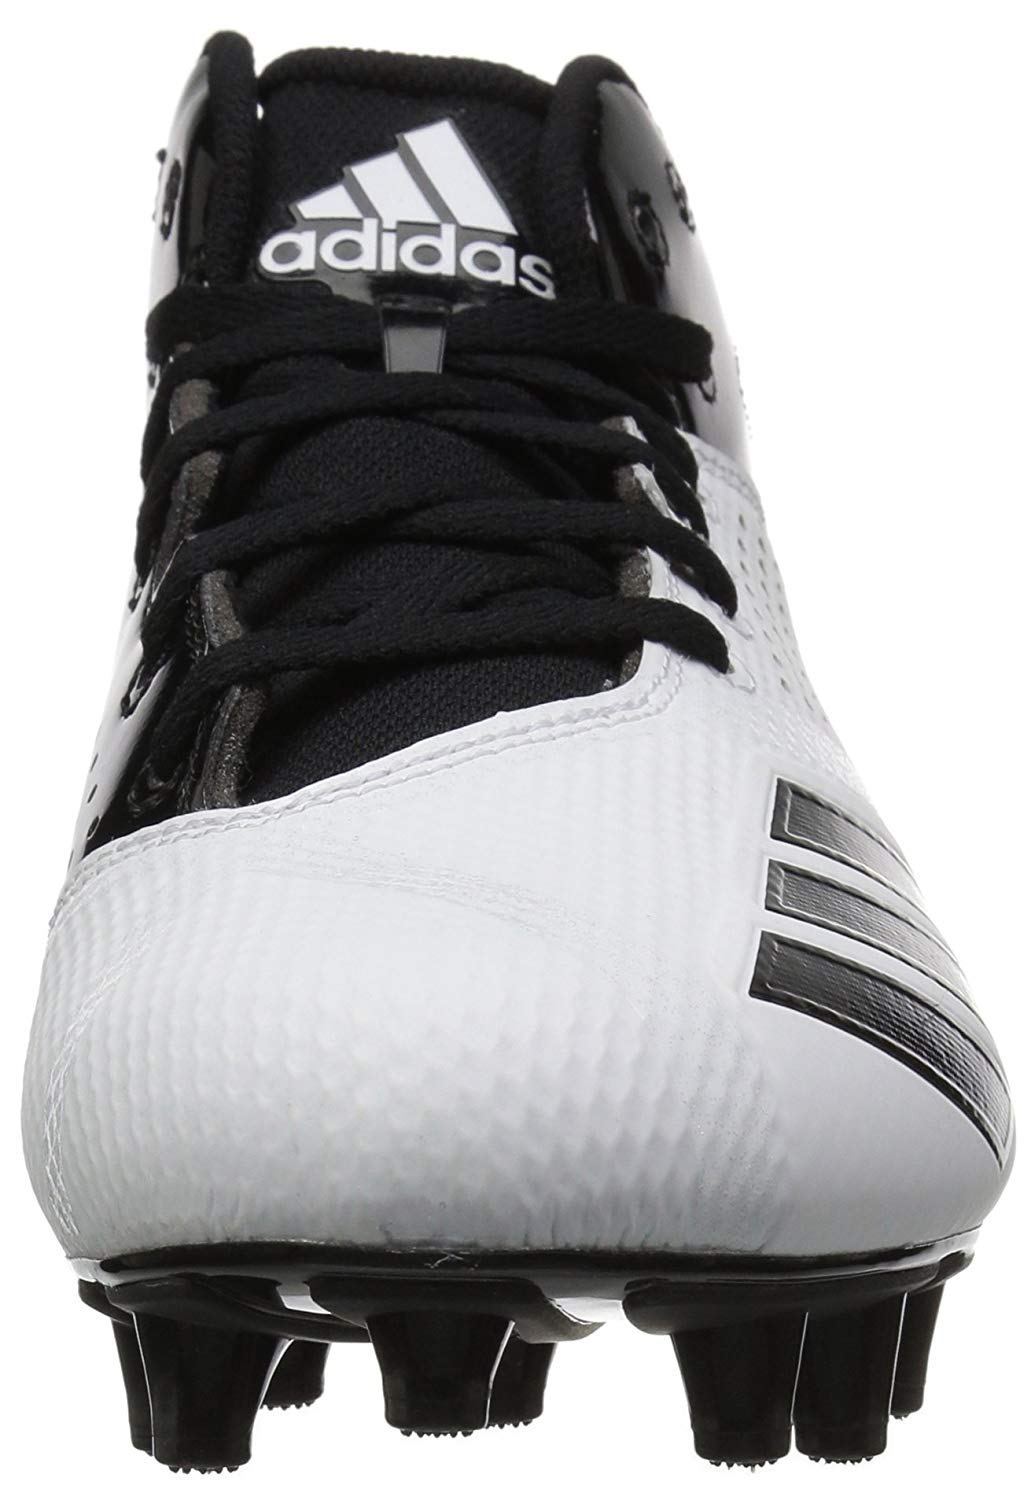 a2a007e28 Adidas Mens 5 Star Low Top Lace Up Baseball Shoes